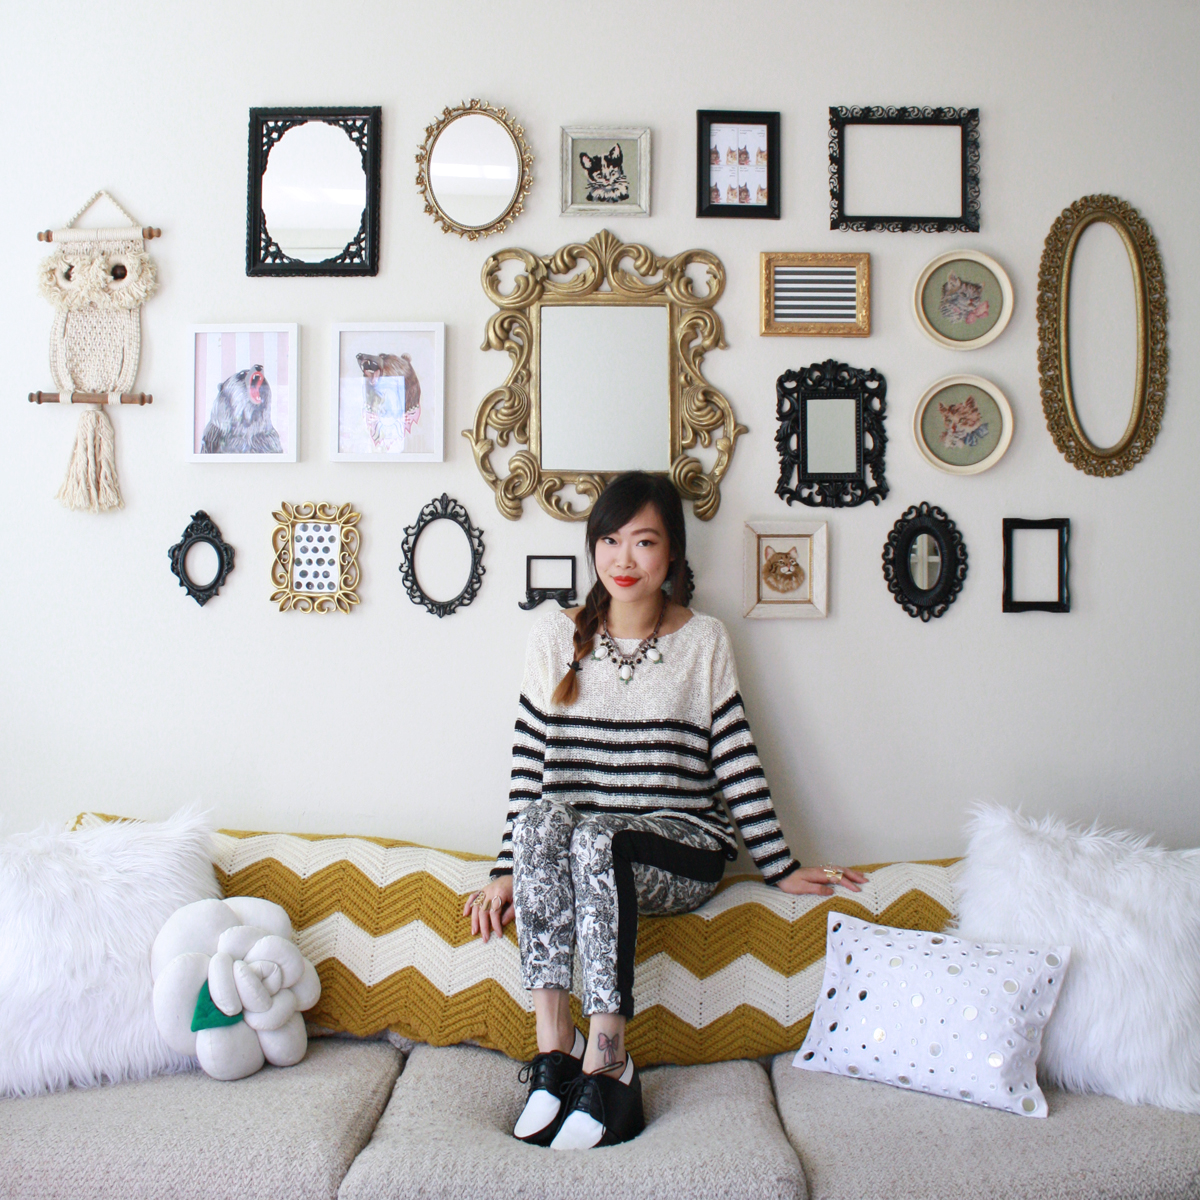 Totally in love with this gallery wall